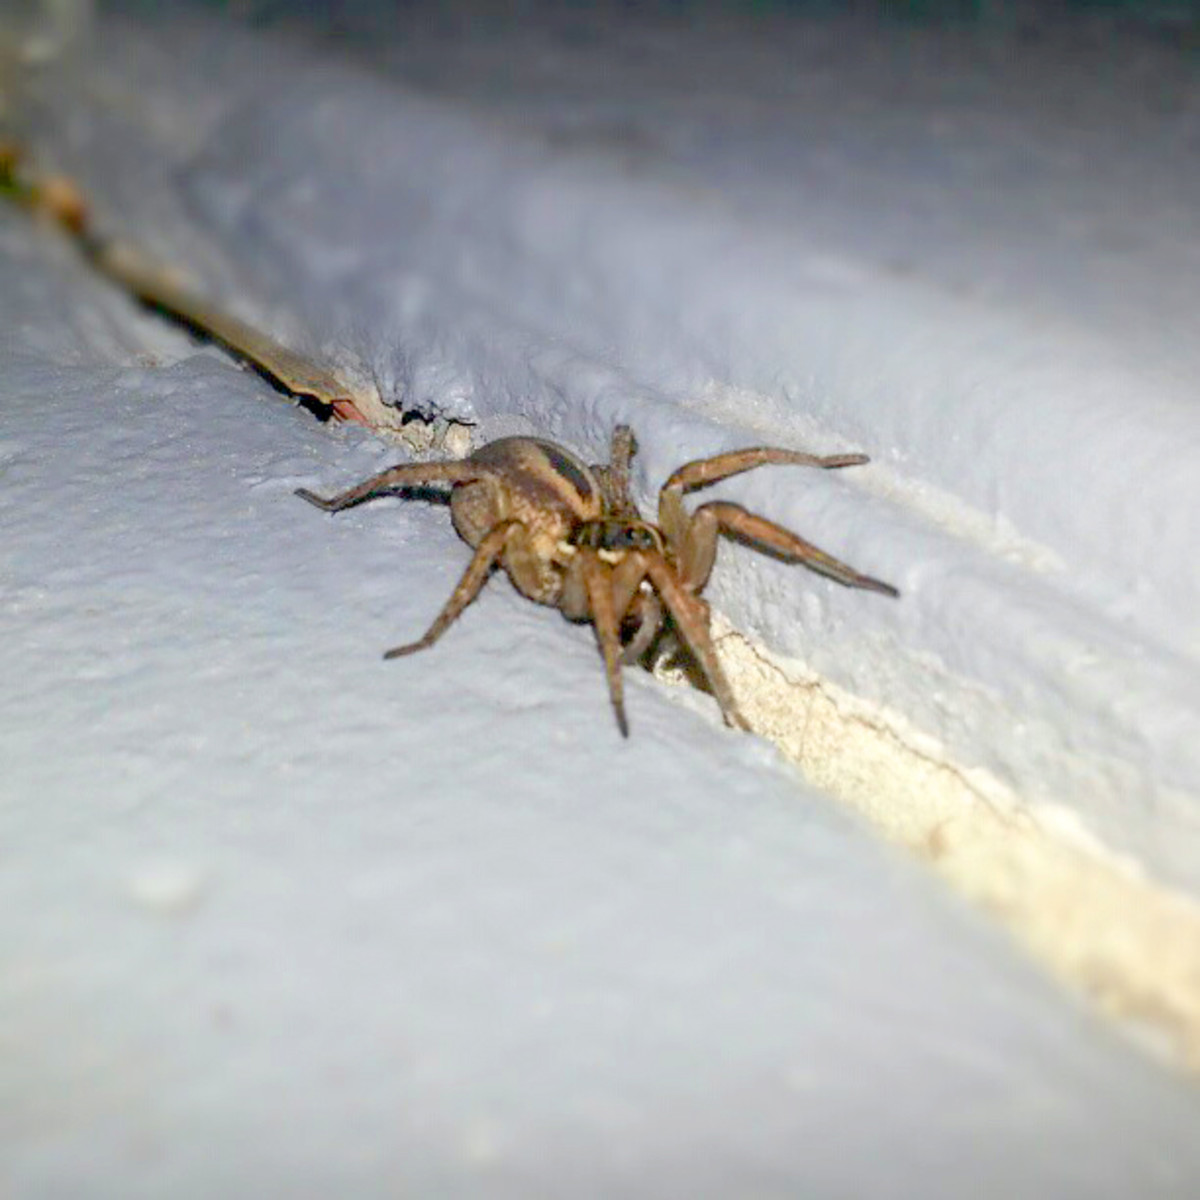 A wolf spider in Delray Beach, Florida. These spiders are large and hairy with thick legs. They are usually up to two inches in size.